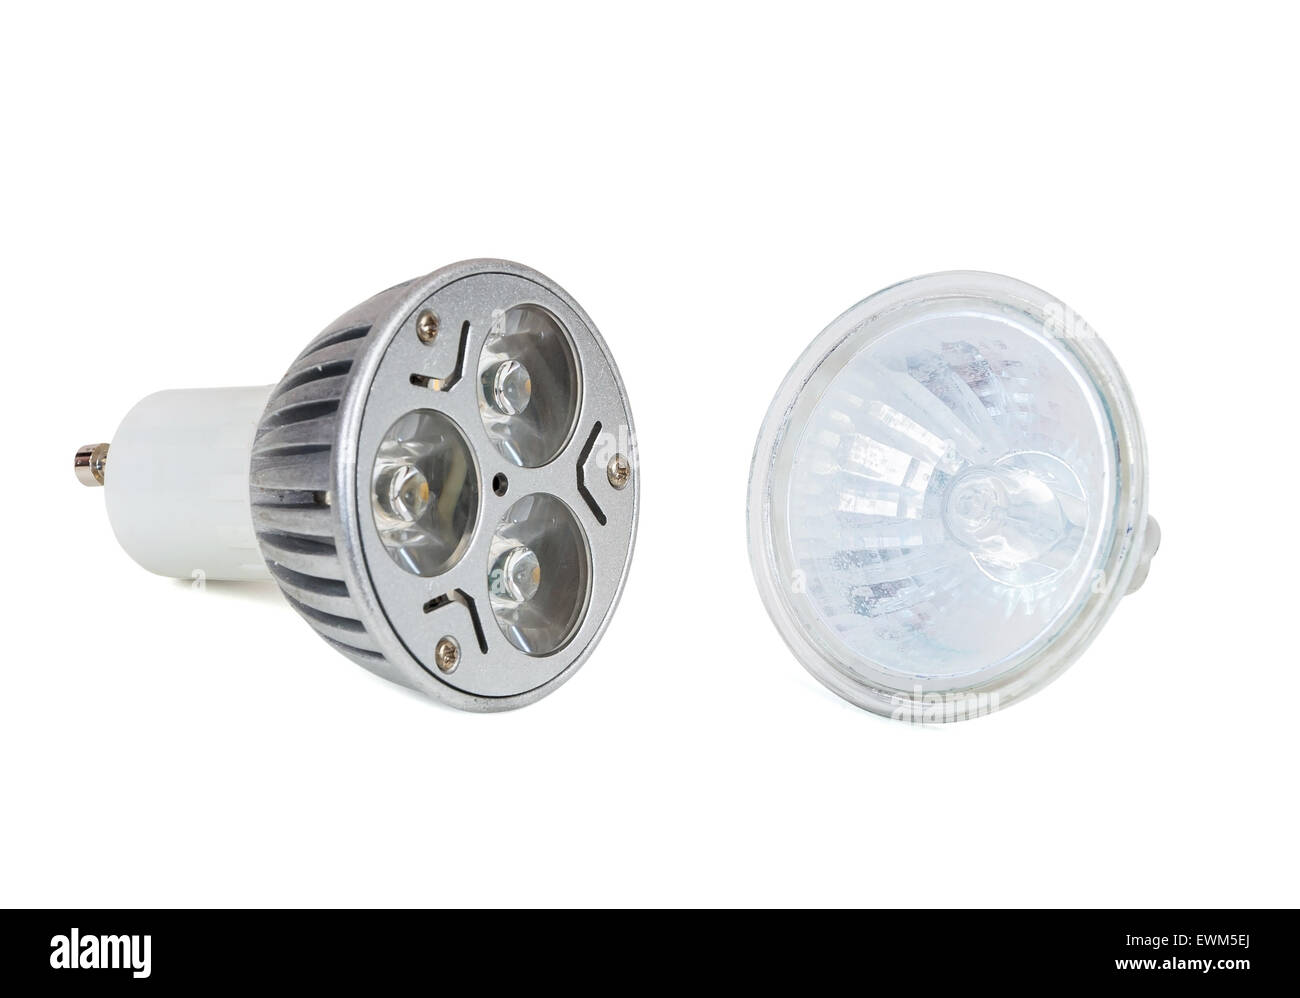 Halogenlampe Led Led Light Bulb And Halogen Lamp Isolated On White Background With